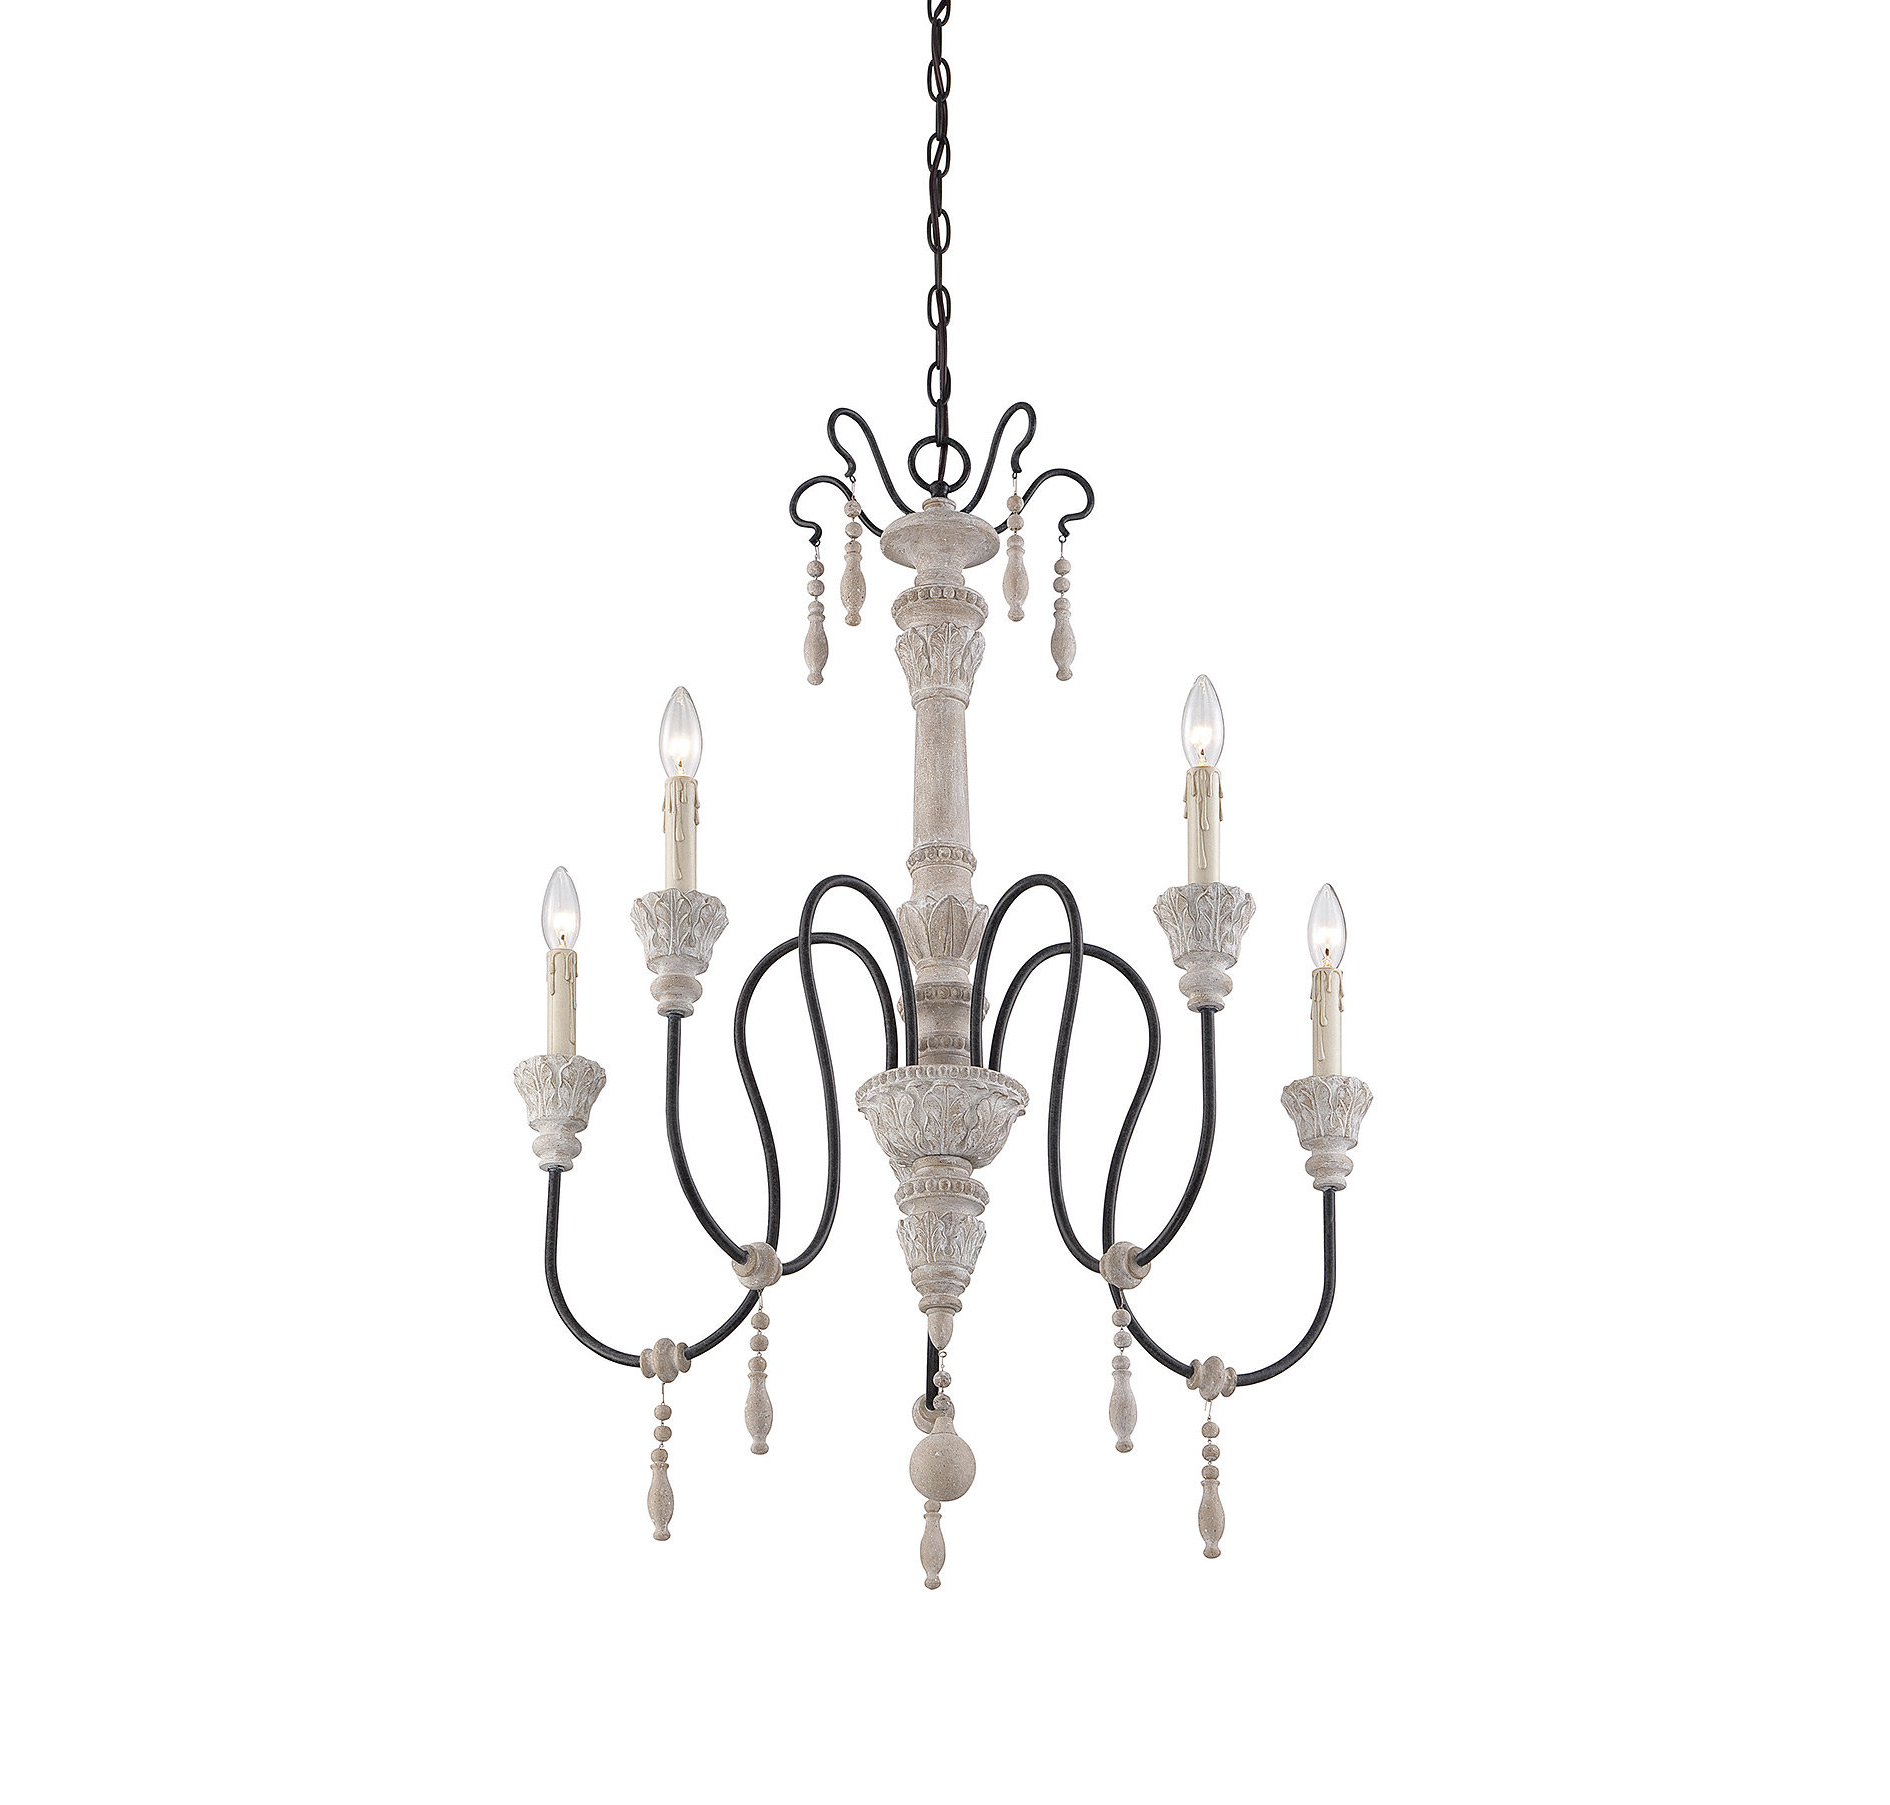 Corneau 5 Light Chandelier Pertaining To Trendy Armande Candle Style Chandeliers (View 22 of 25)